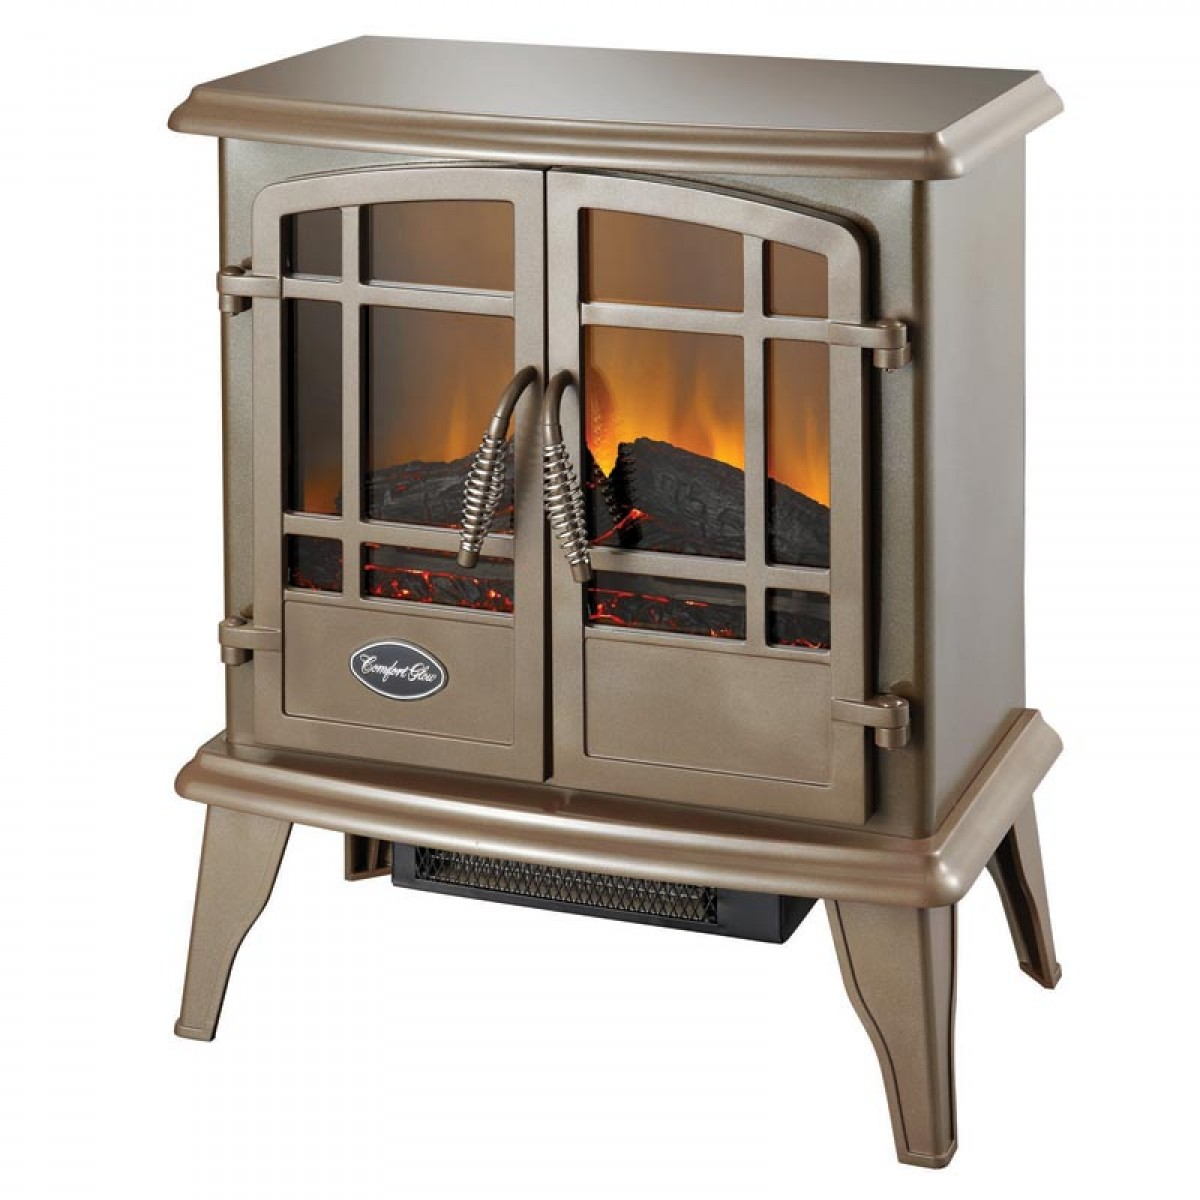 the keystone es5132 bronze electric wood stove. Black Bedroom Furniture Sets. Home Design Ideas